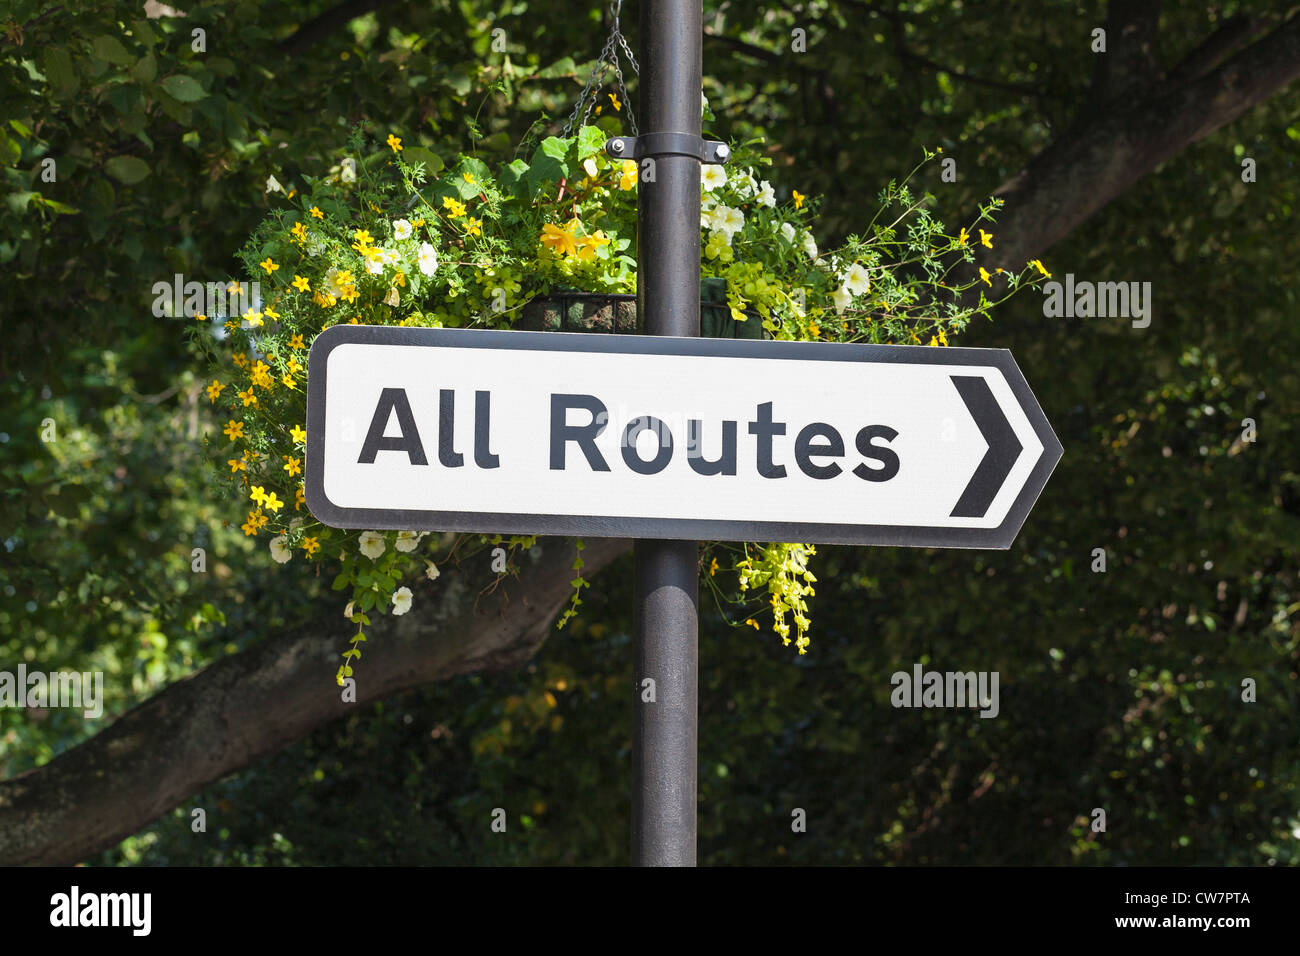 All routes street sign, England - Stock Image